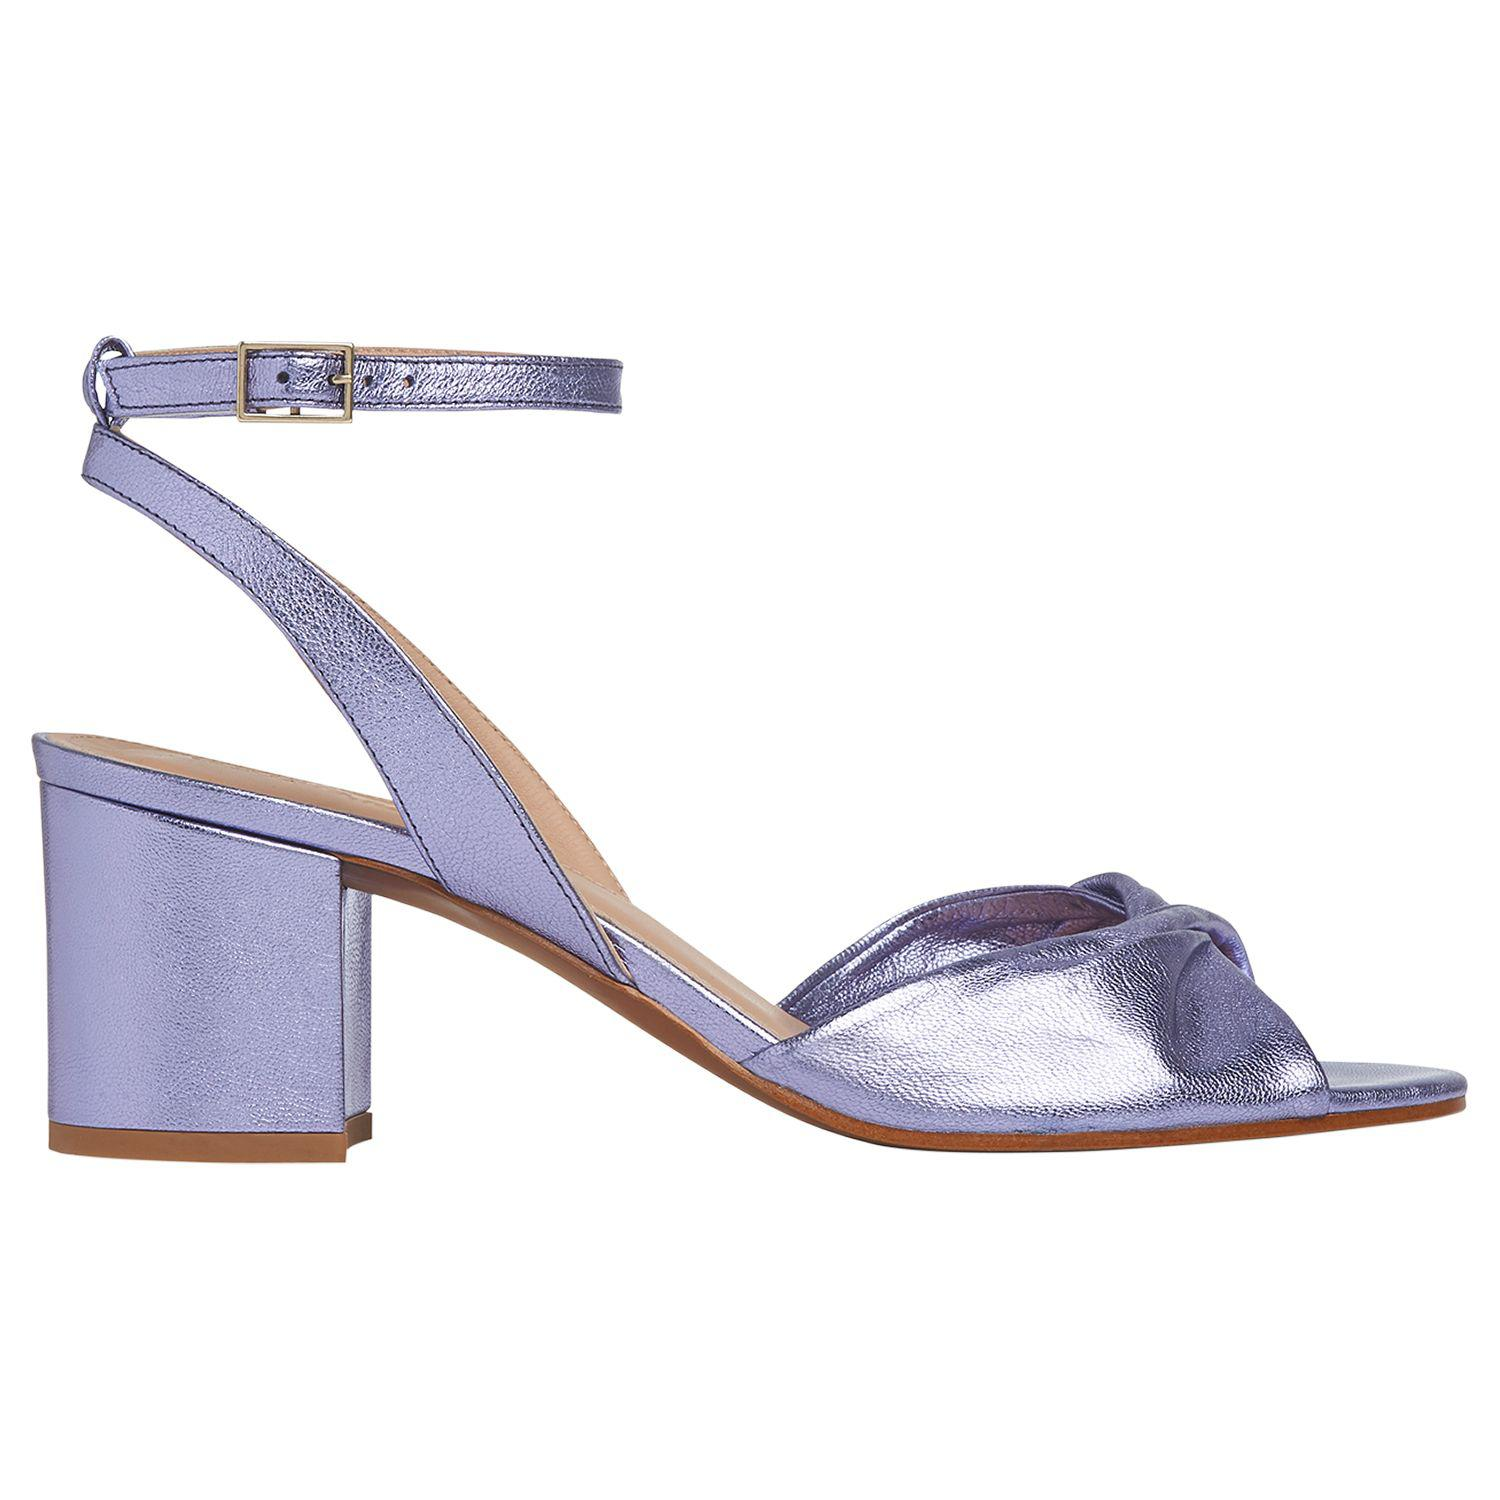 d4802d7bc983 Whistles. Women s Tula Twist Block Heel Sandals. £165 £99 From John Lewis  and Partners